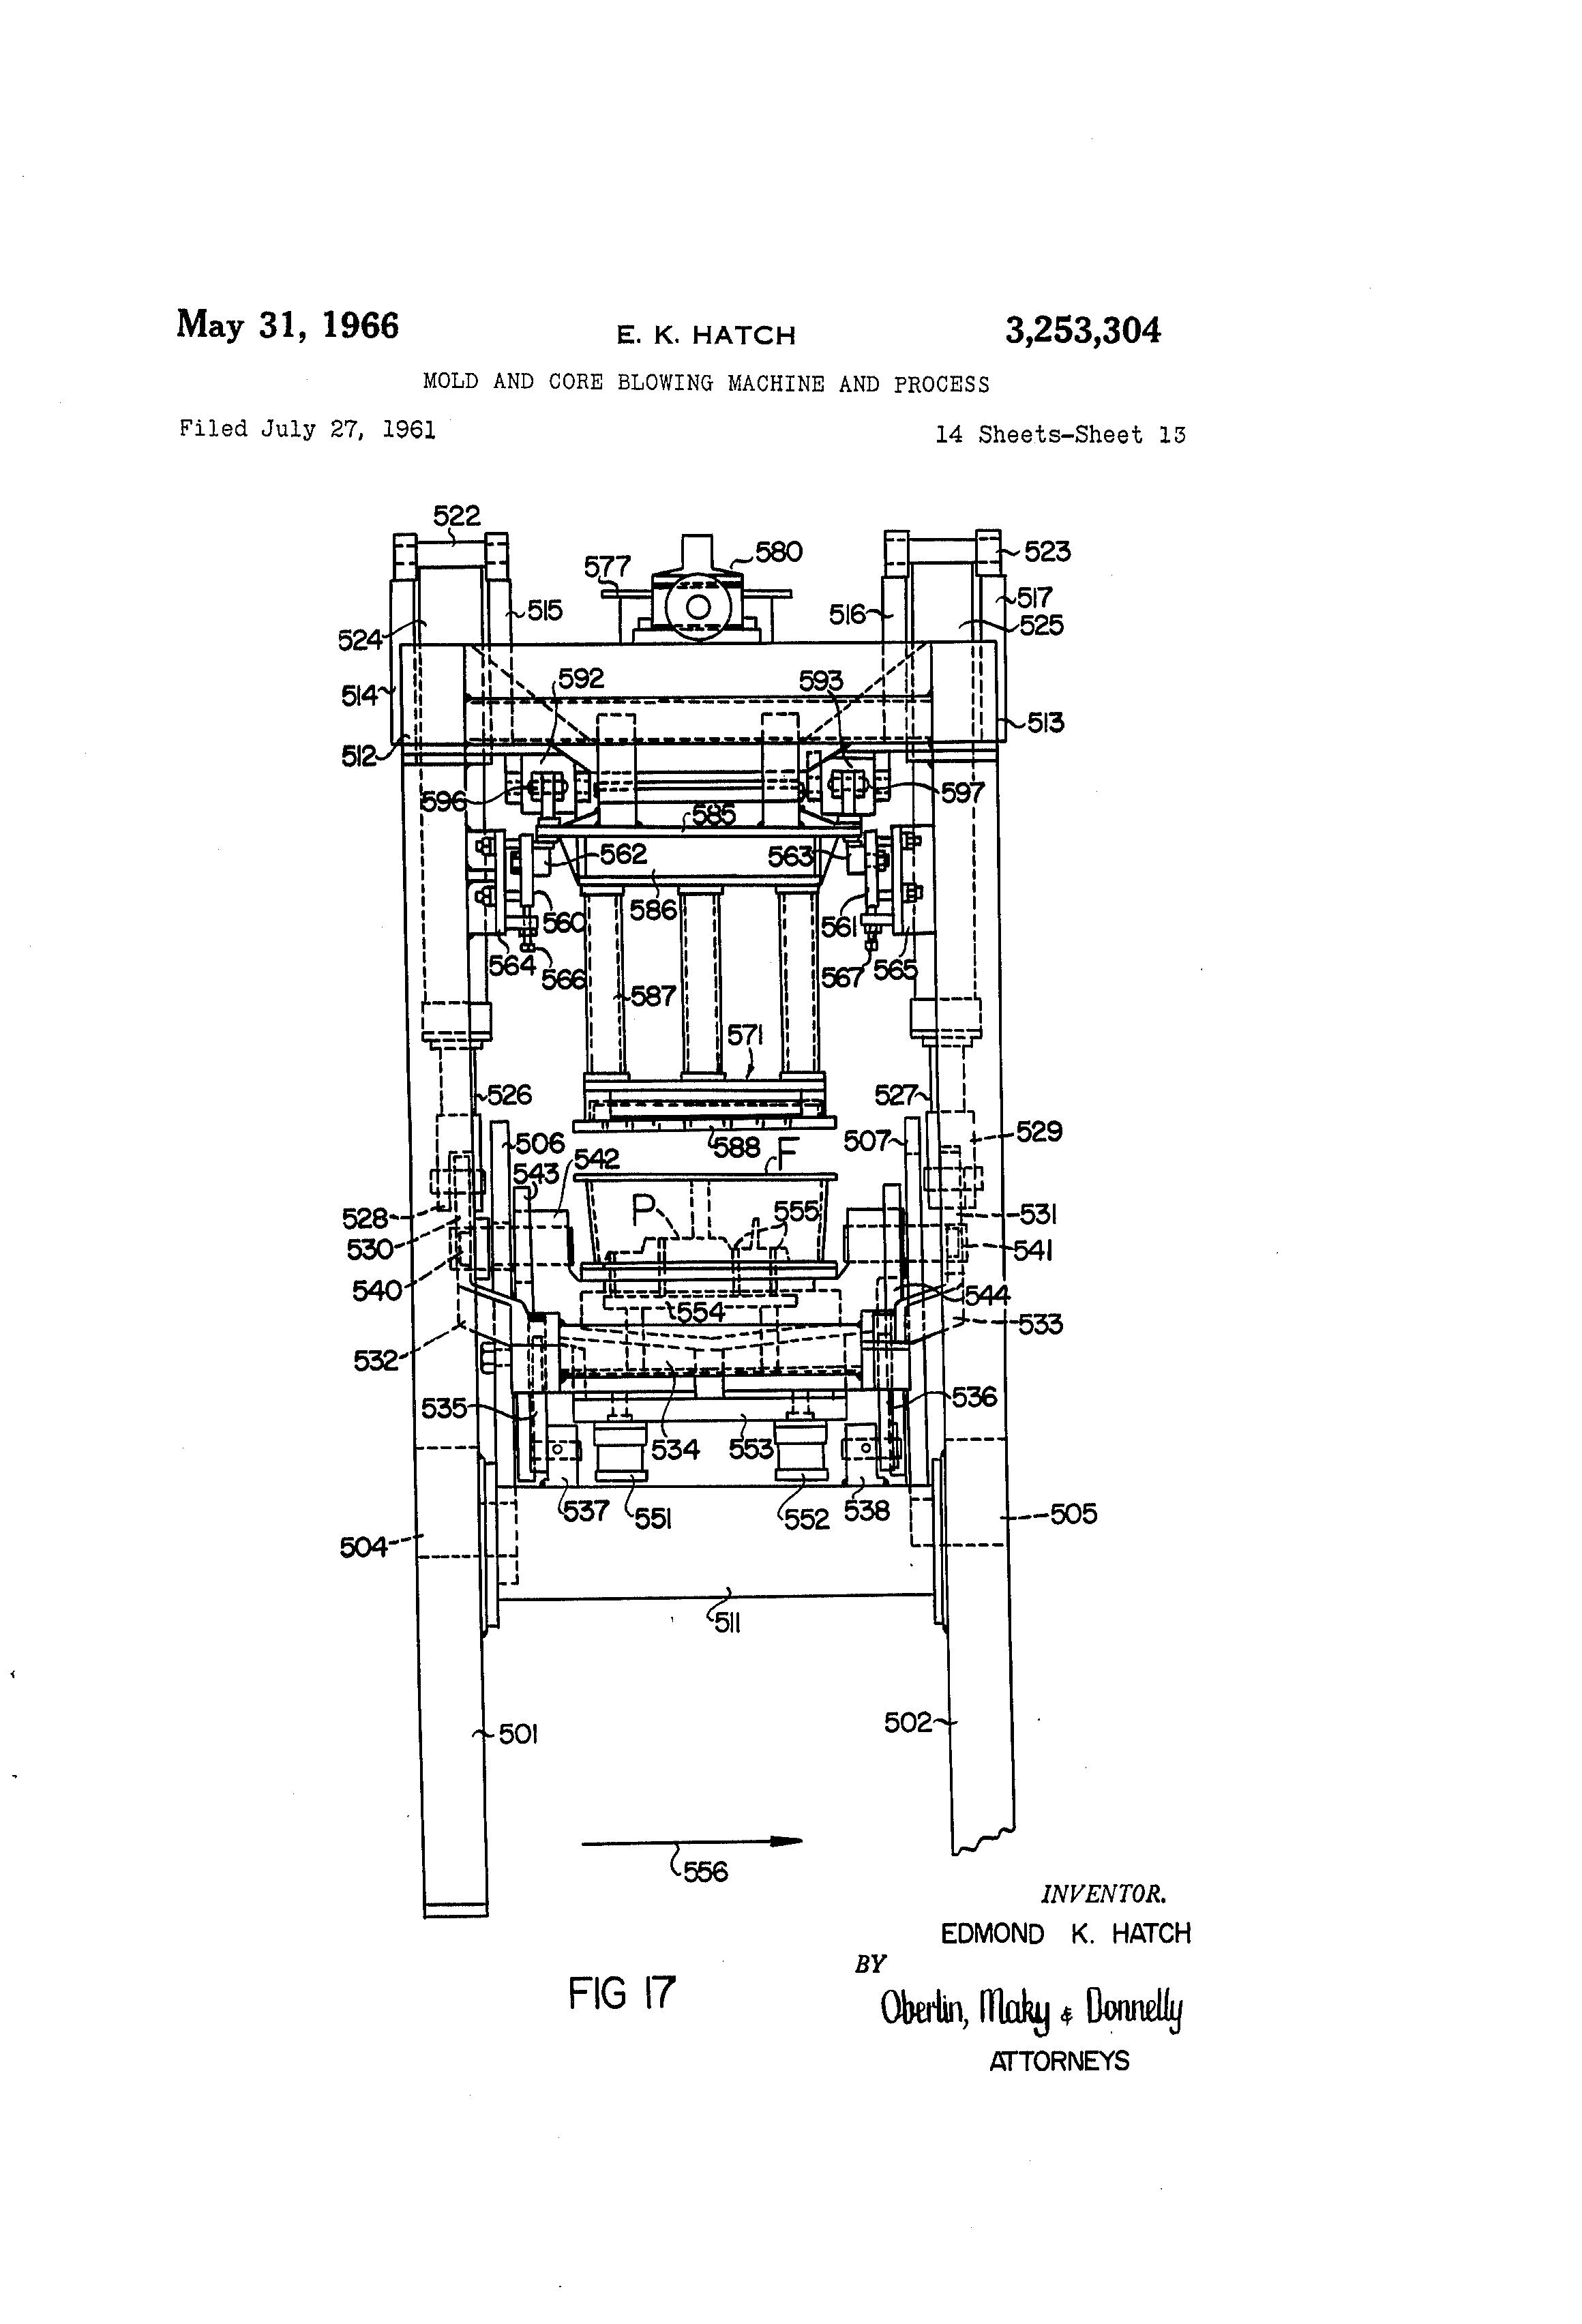 US3253304 12 patent us3253304 mold and core blowing machine and process  at sewacar.co